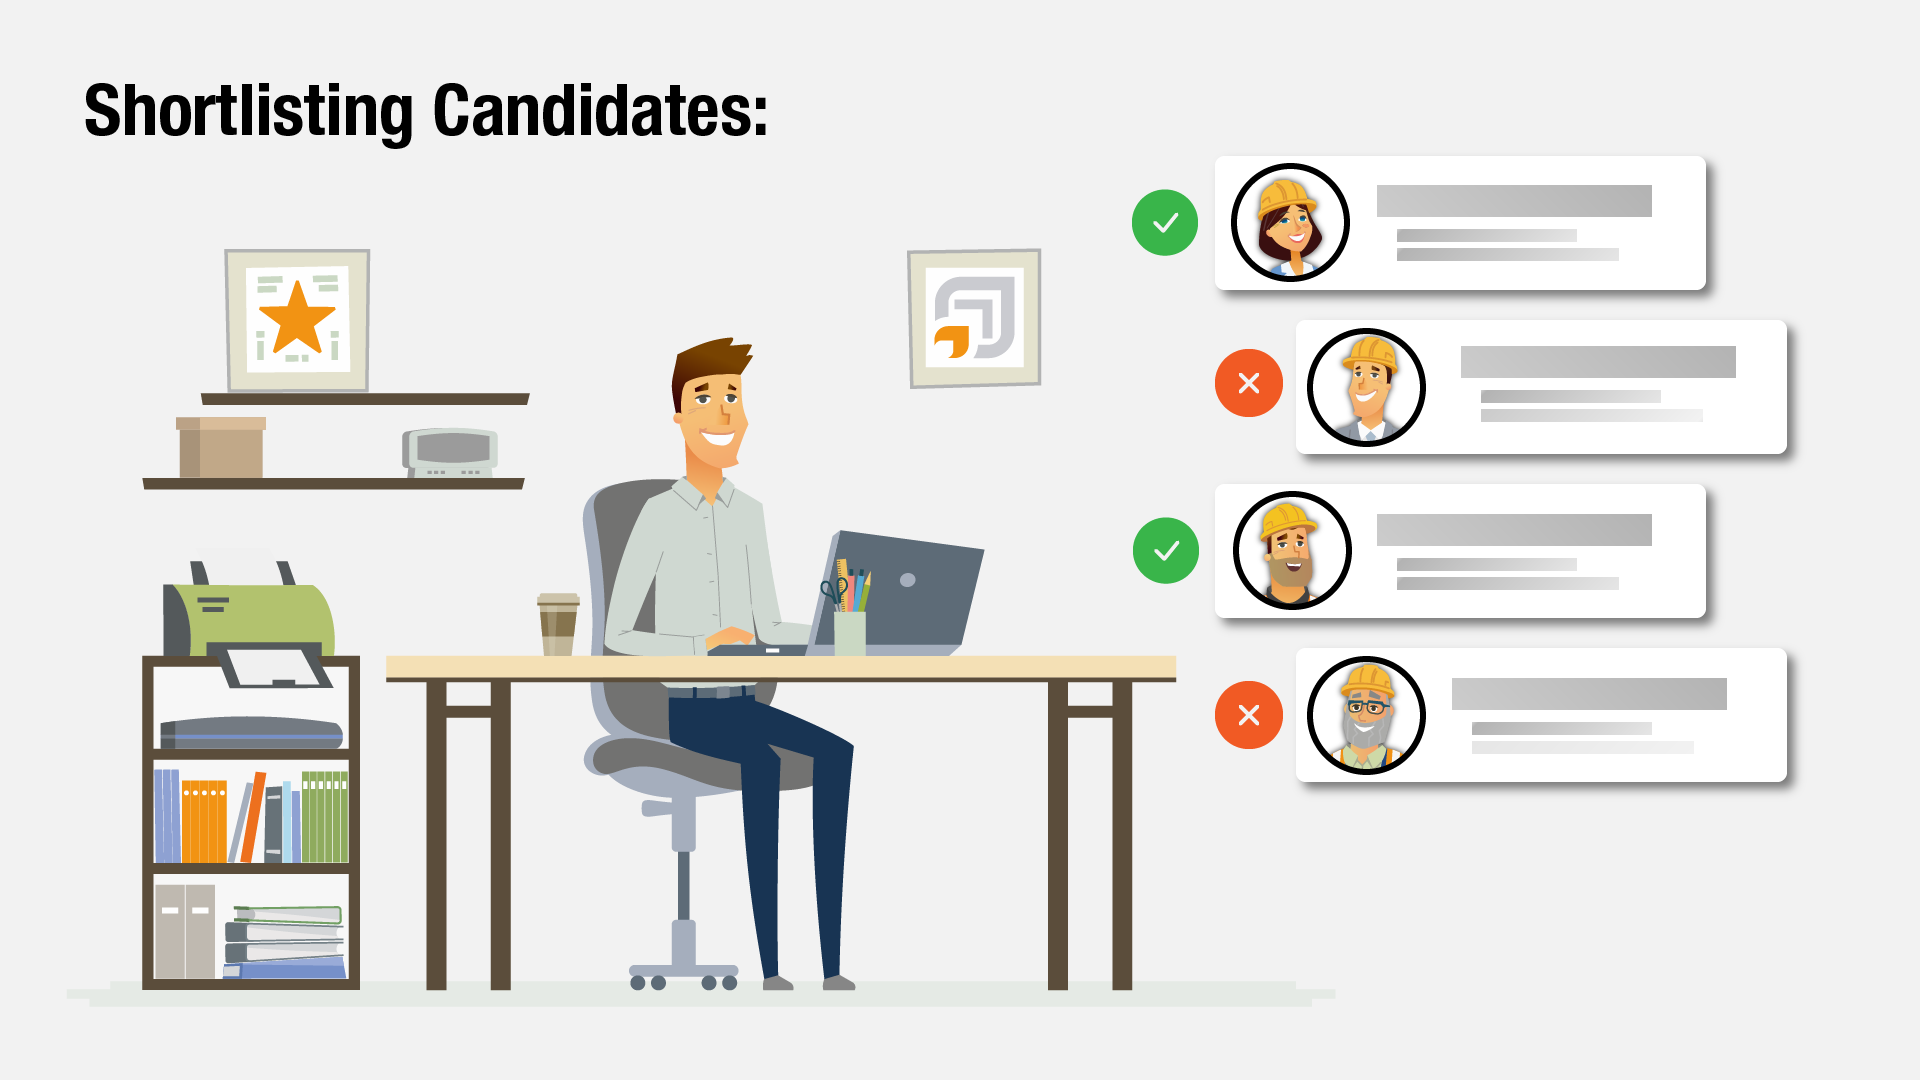 Shortlisting Candidates for hire